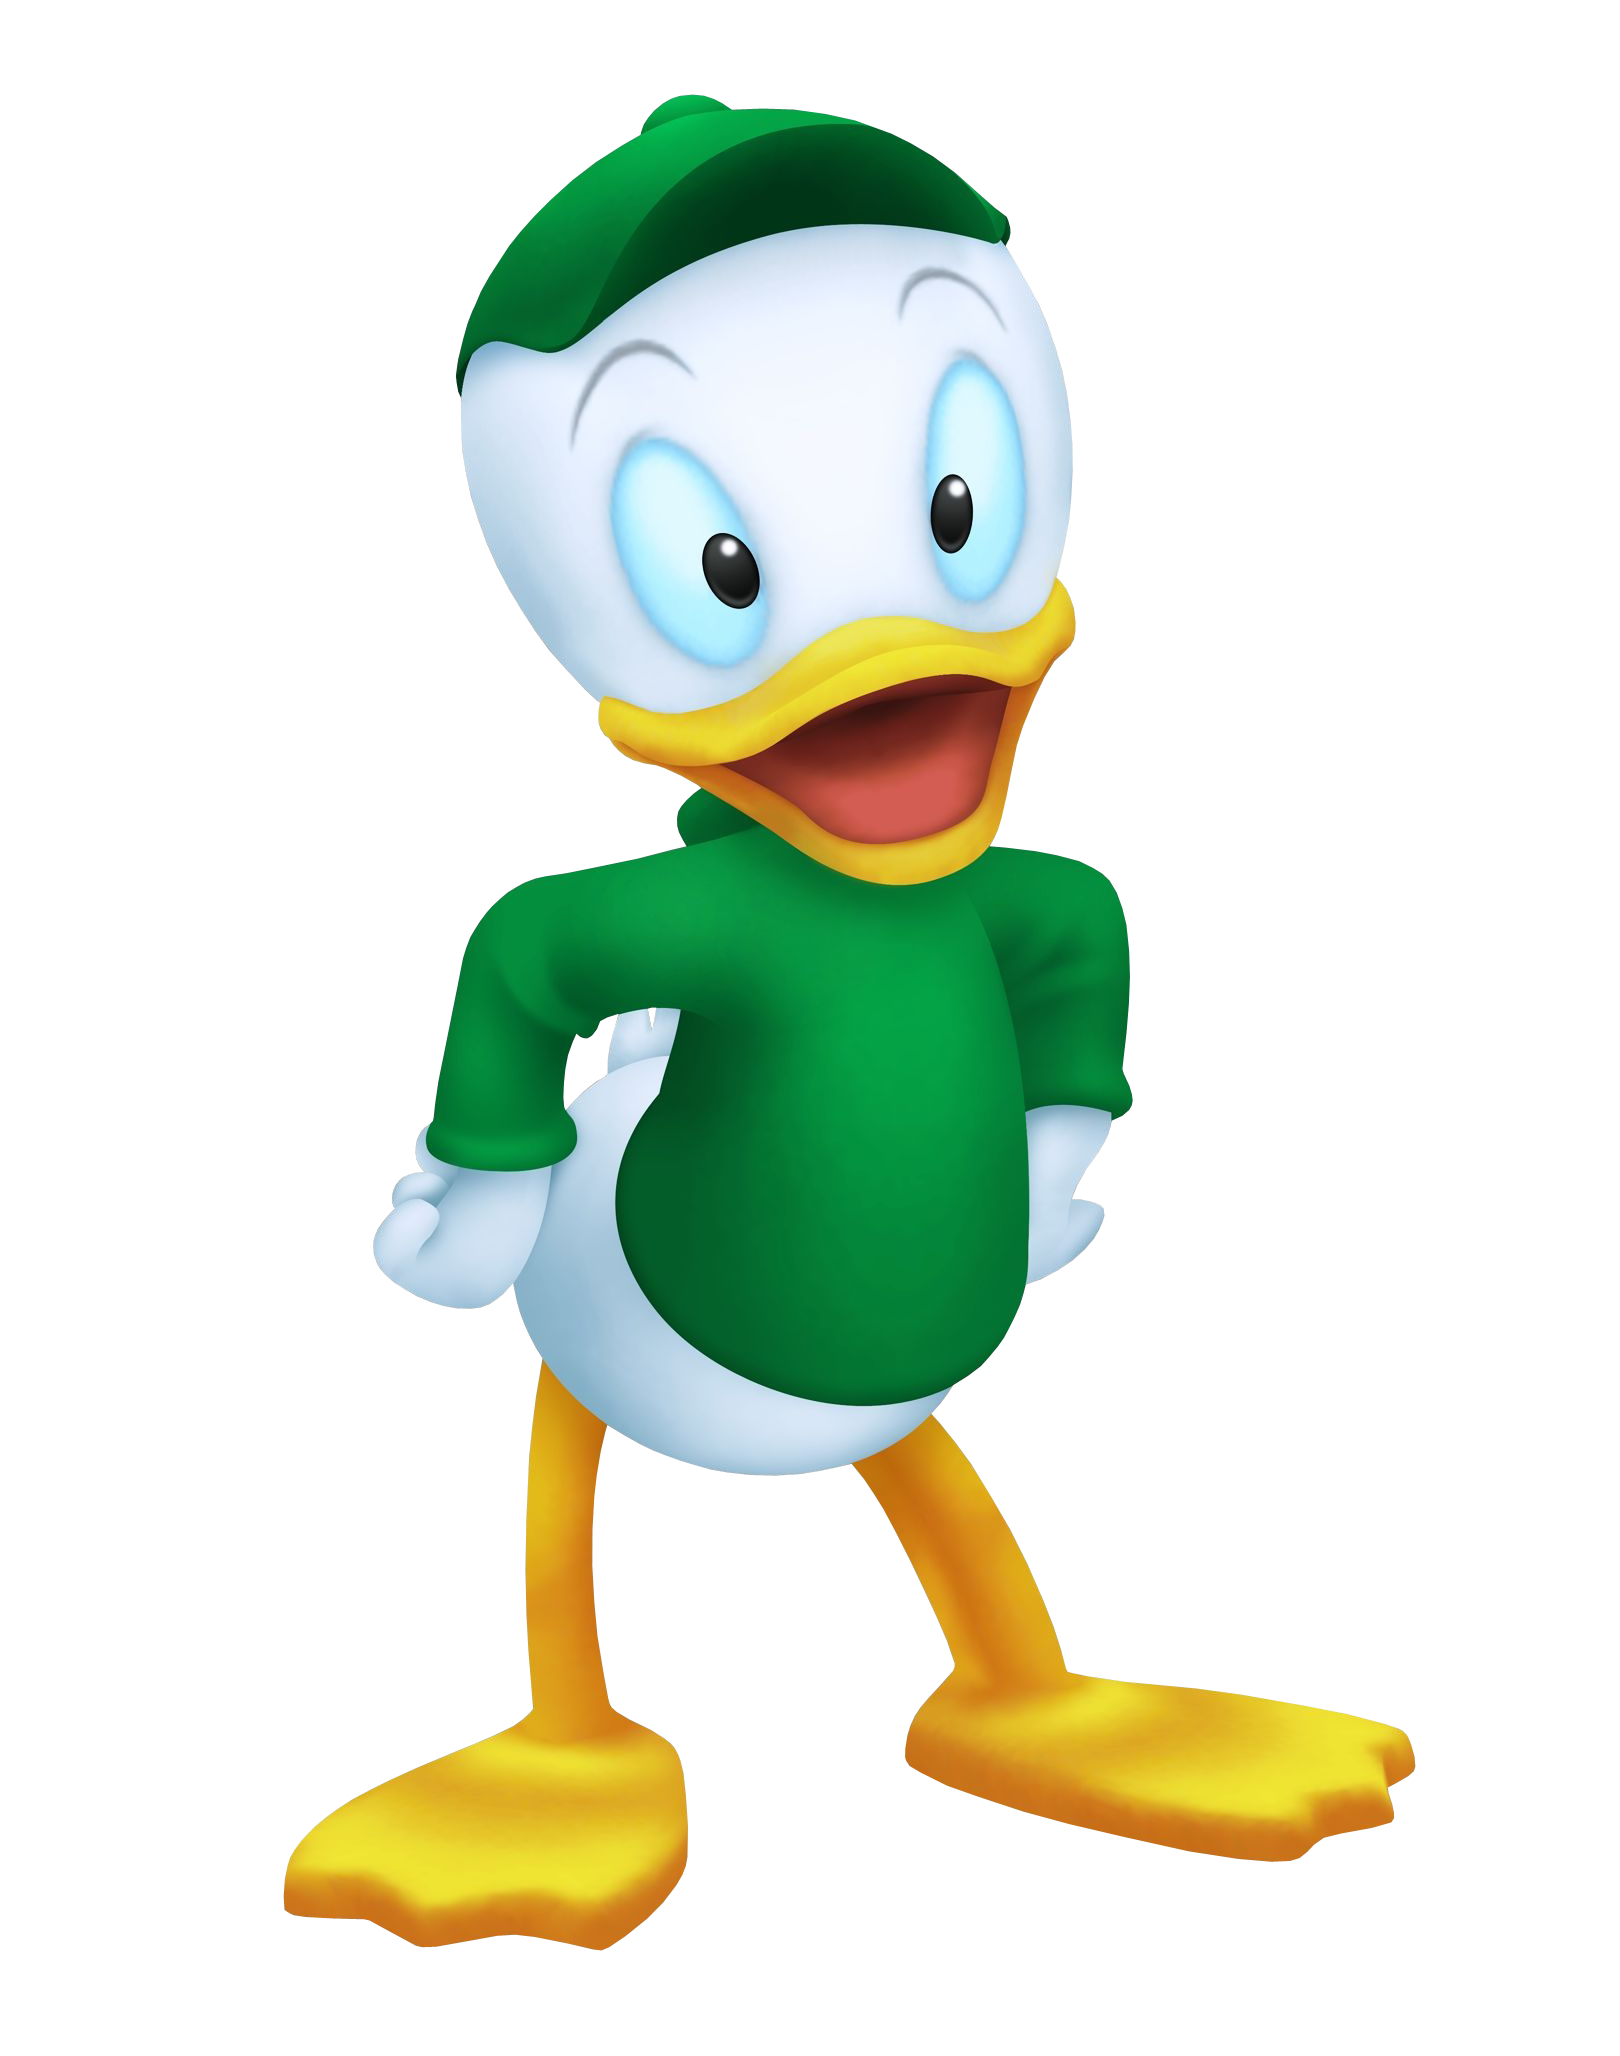 Duck PNG Image